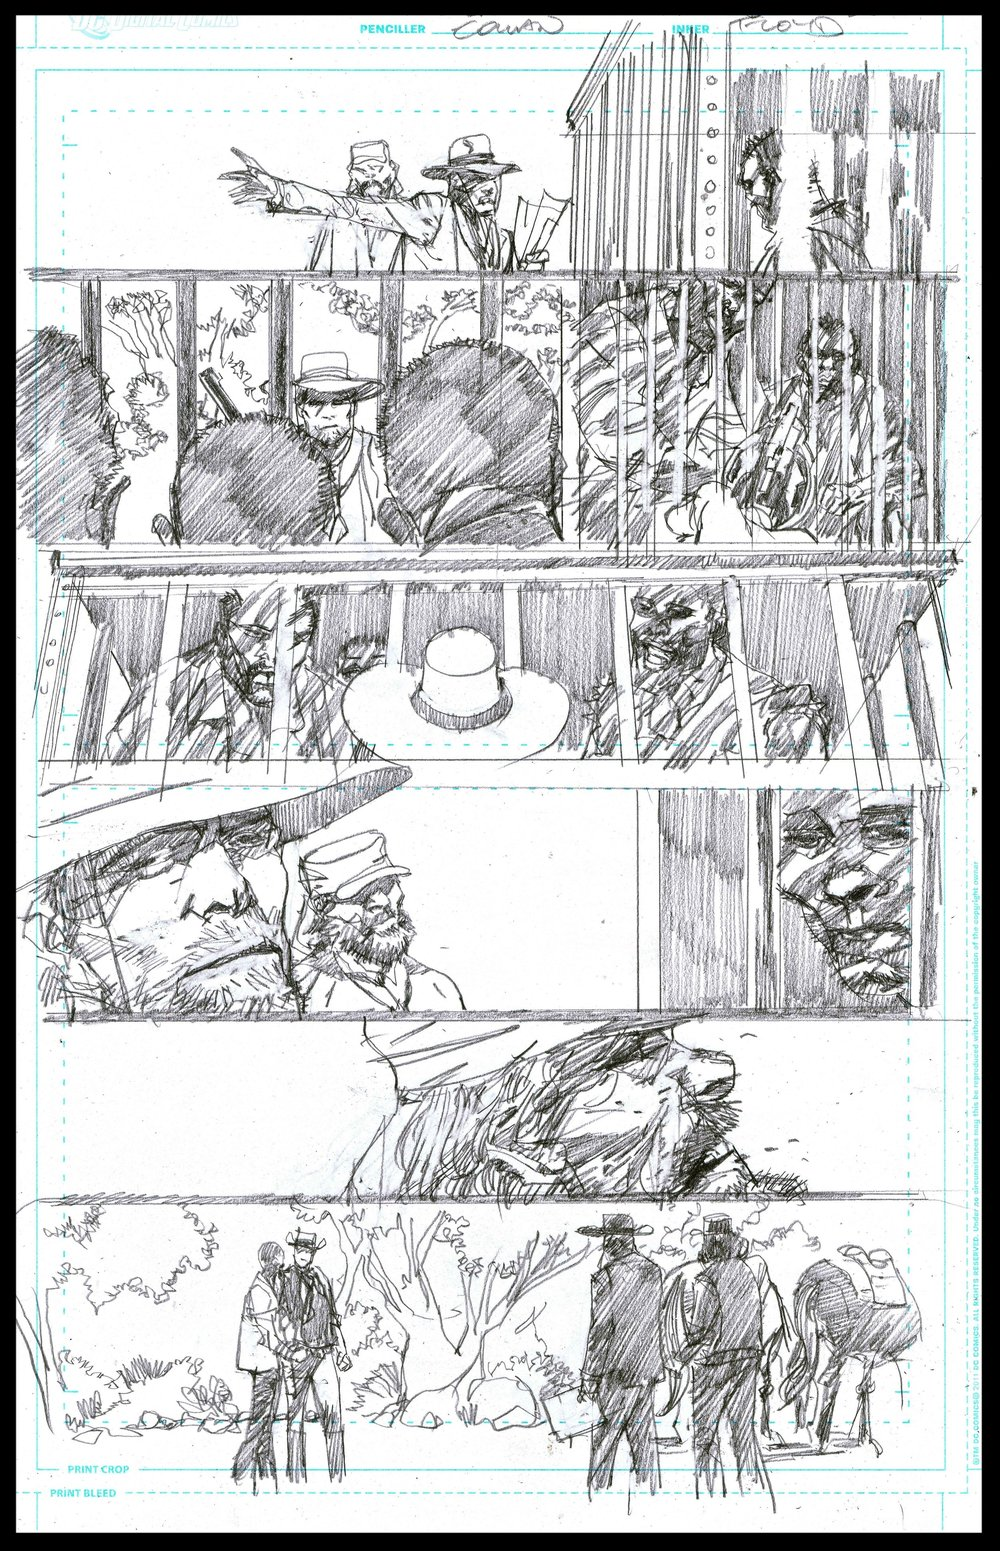 Django Unchained #6 - Page 38 - Pencils